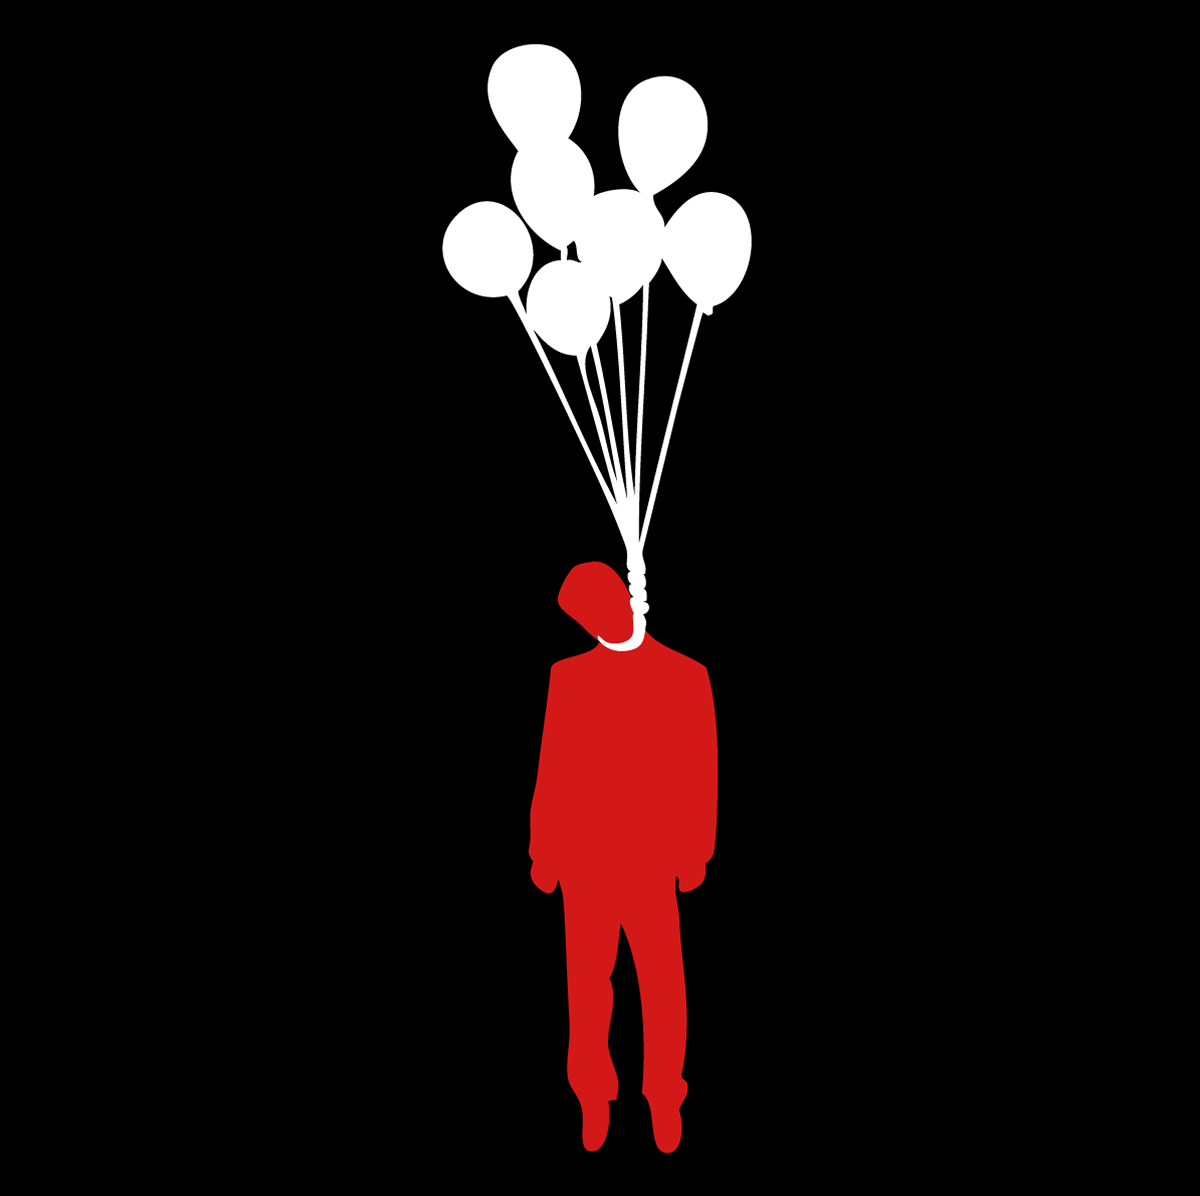 A Silhouette Of Some Sad Sack Man Floating In The Air Ironically Hanging Himself